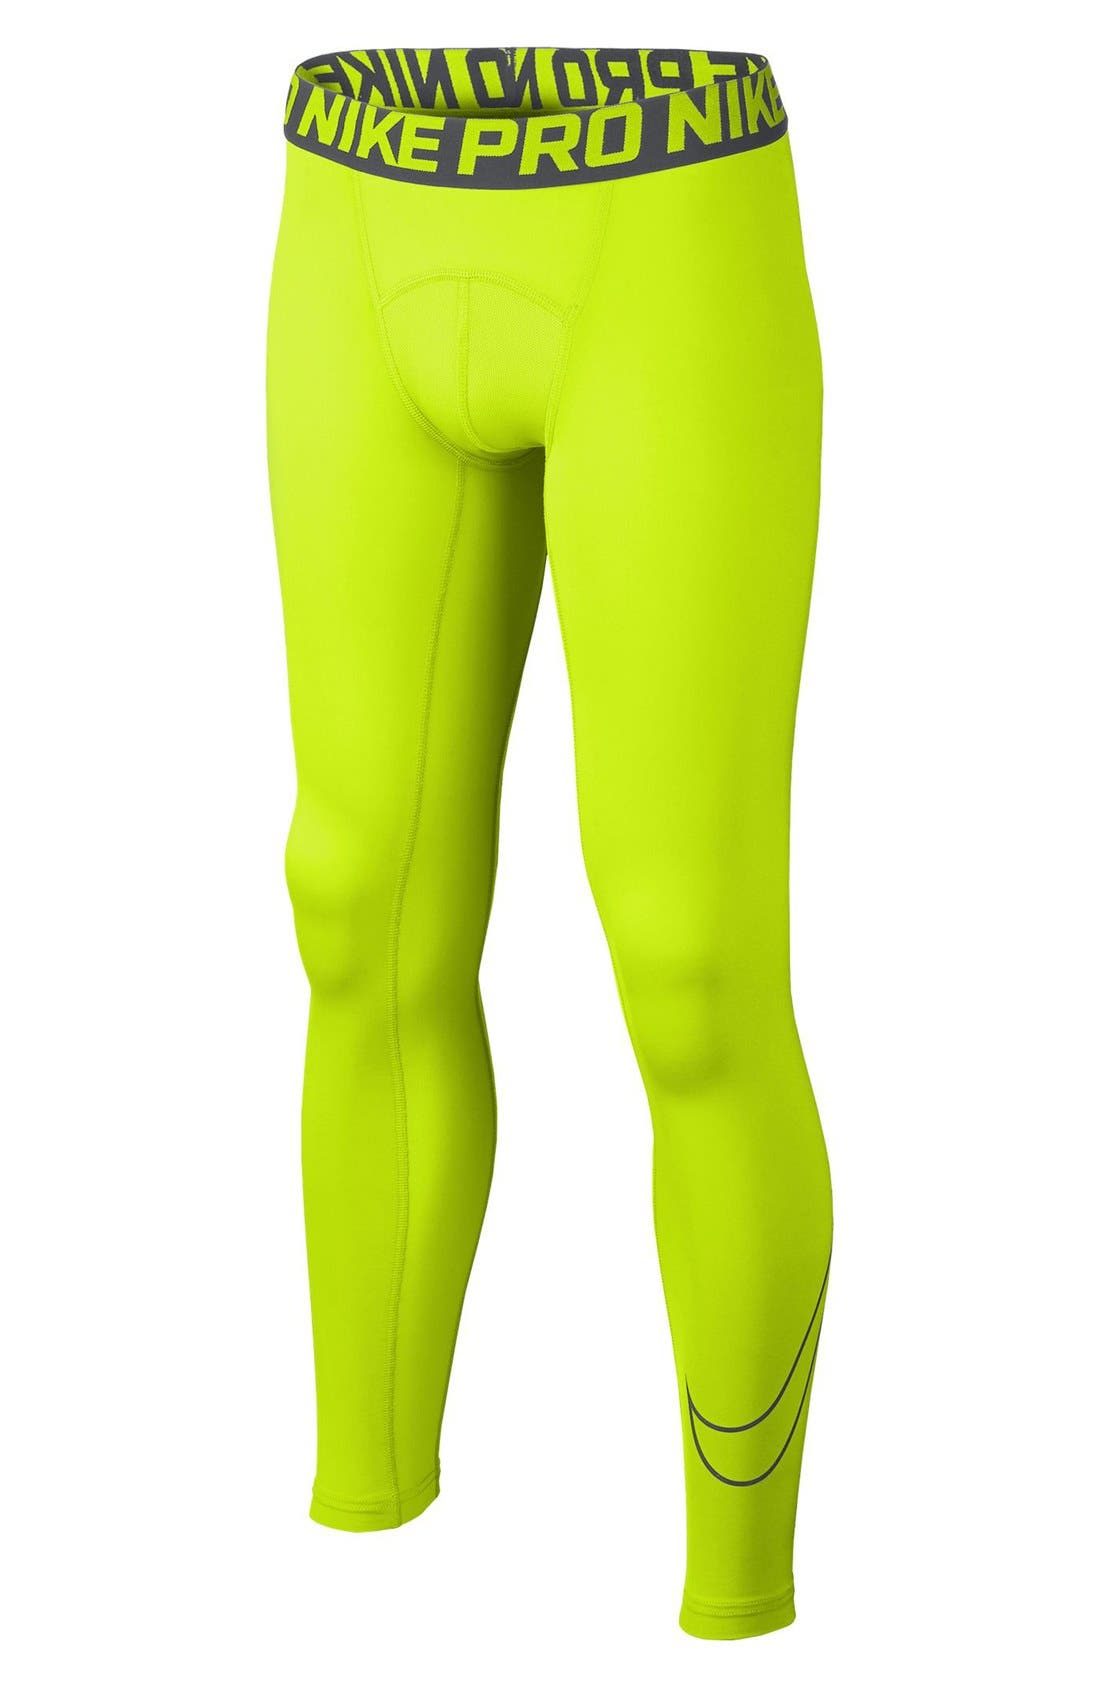 Alternate Image 1 Selected - Nike Dri-FIT Compression Tights (Little Boys & Big Boys)